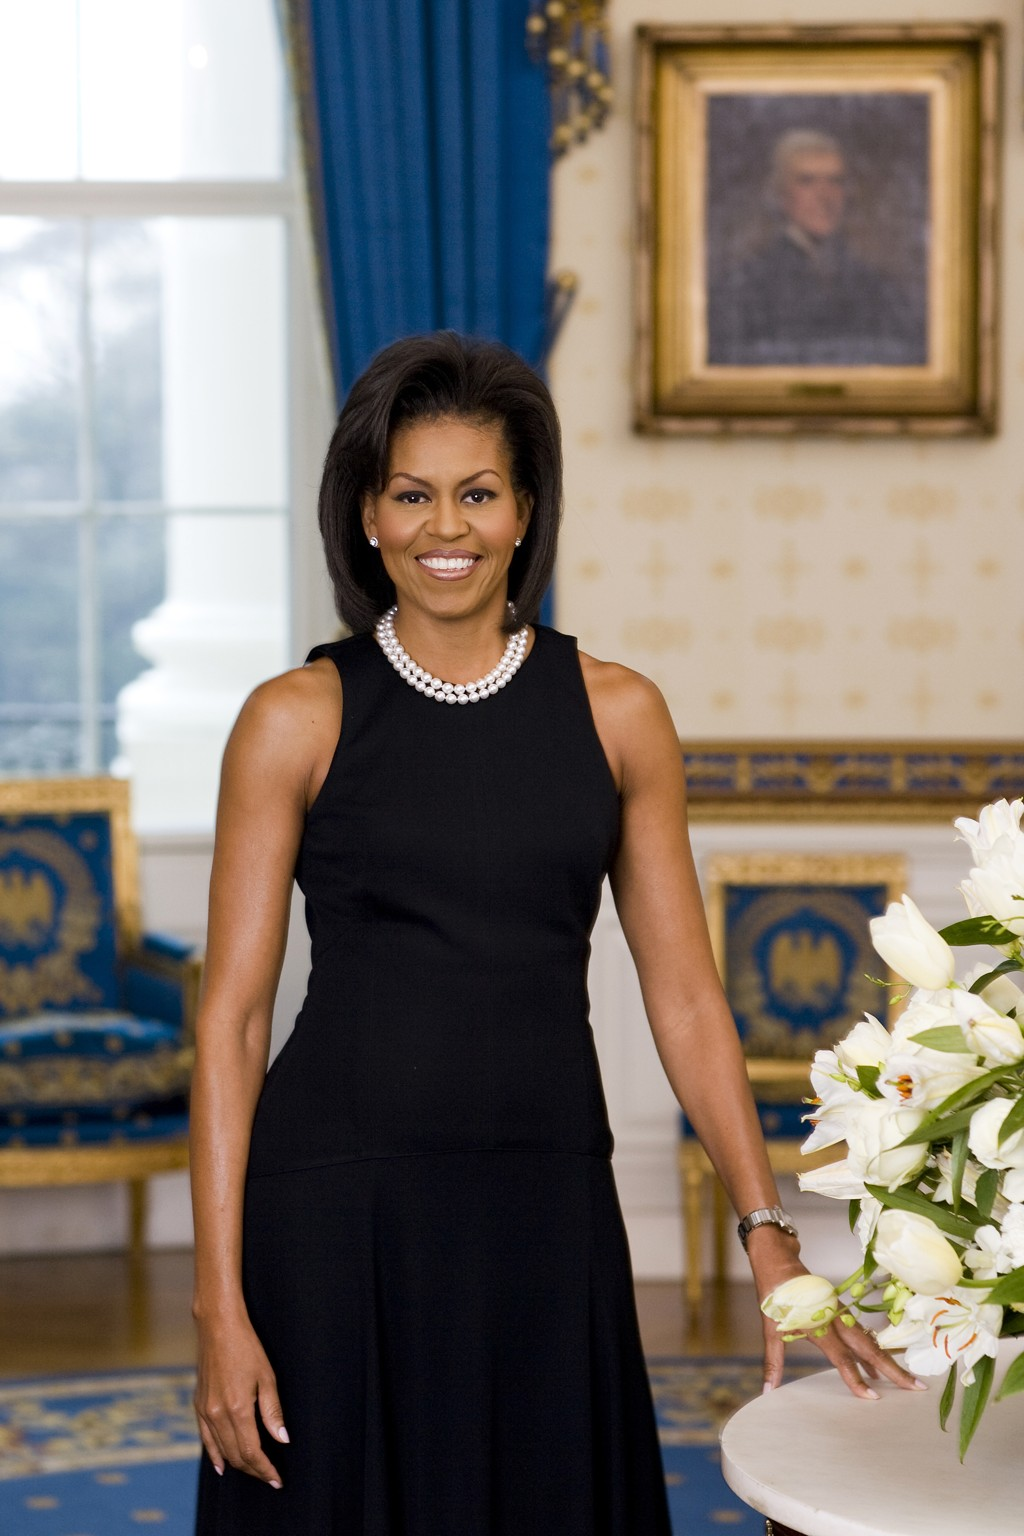 Michelle Obama's 2009 official portrait